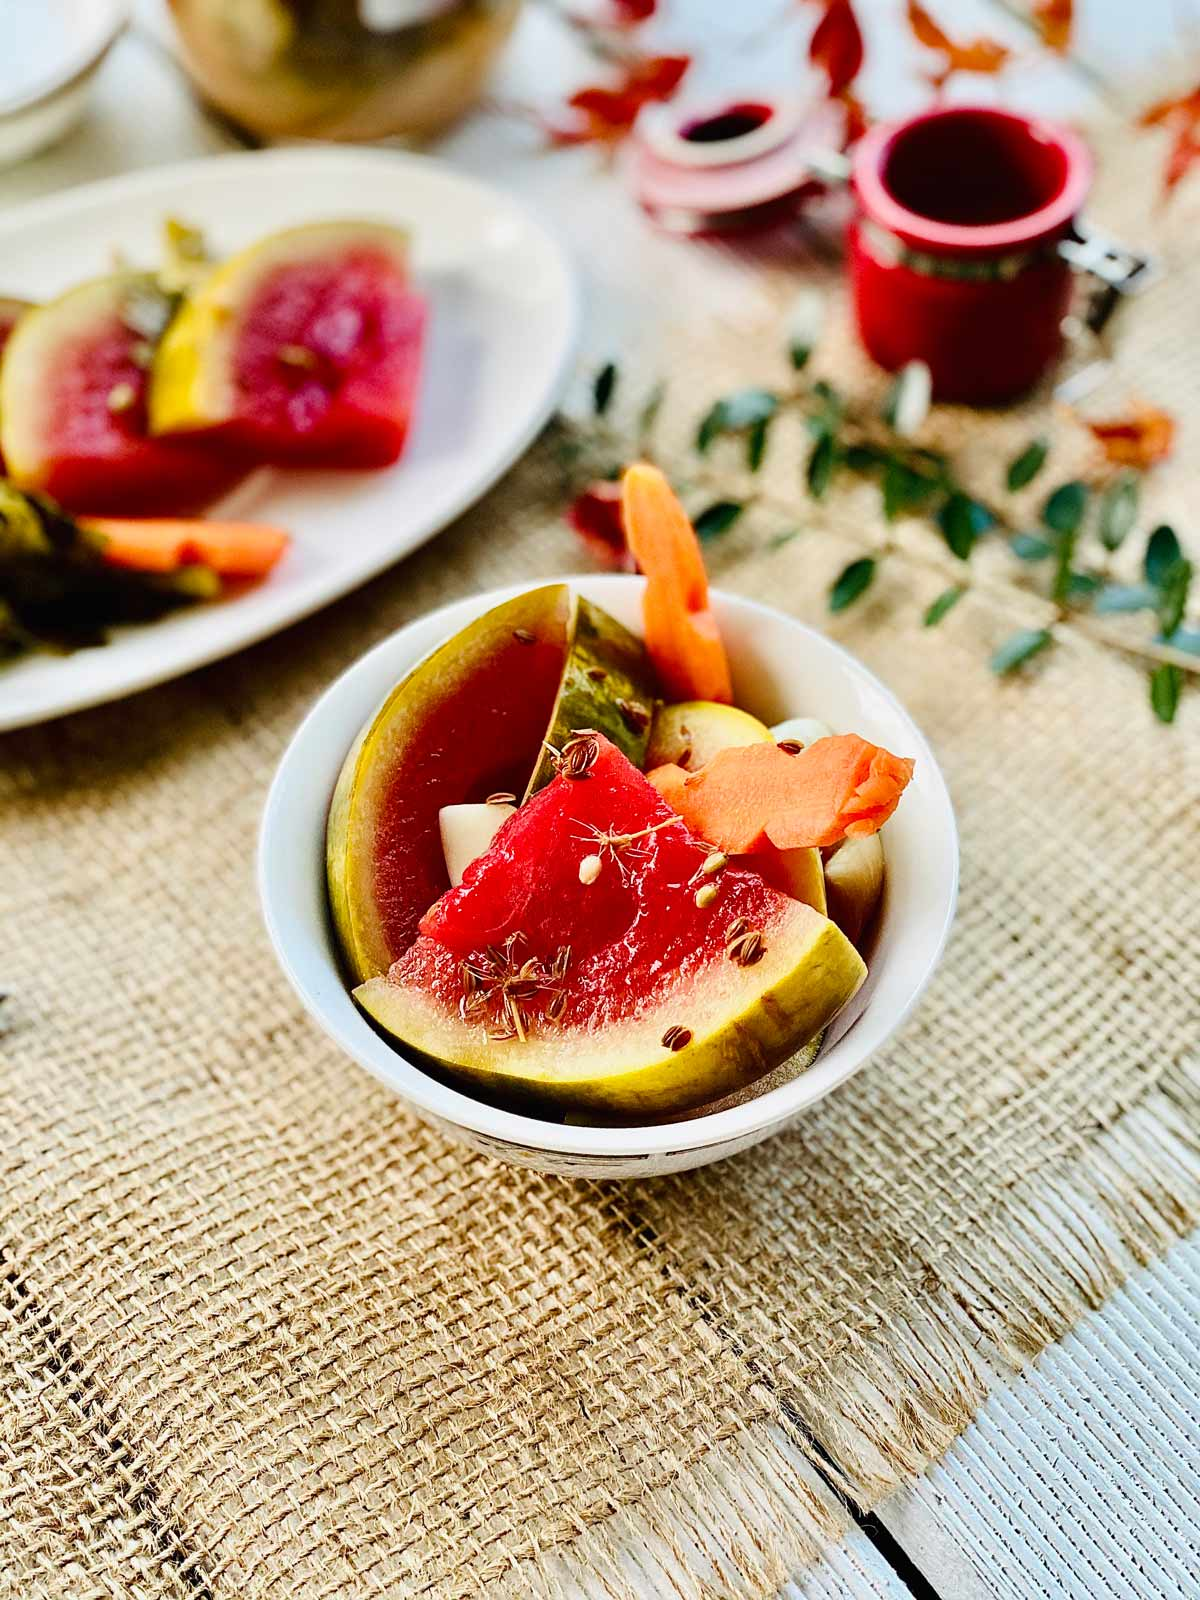 Pickled watermelon quarter slices with pickled carrot in a white serving dish